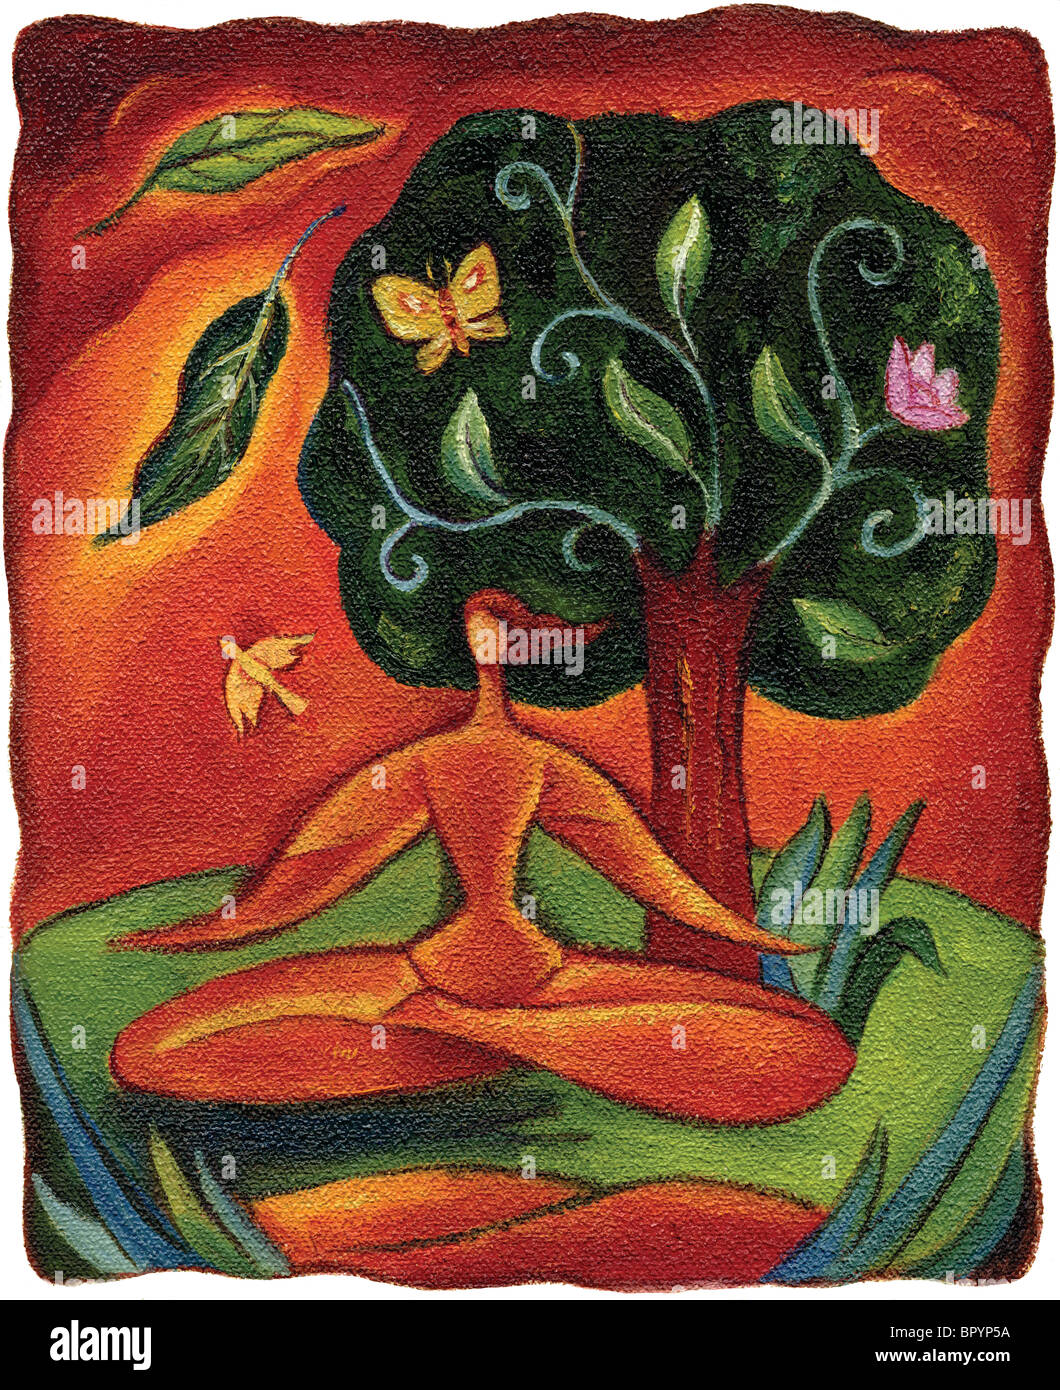 Outline of a woman meditating under a tree - Stock Image